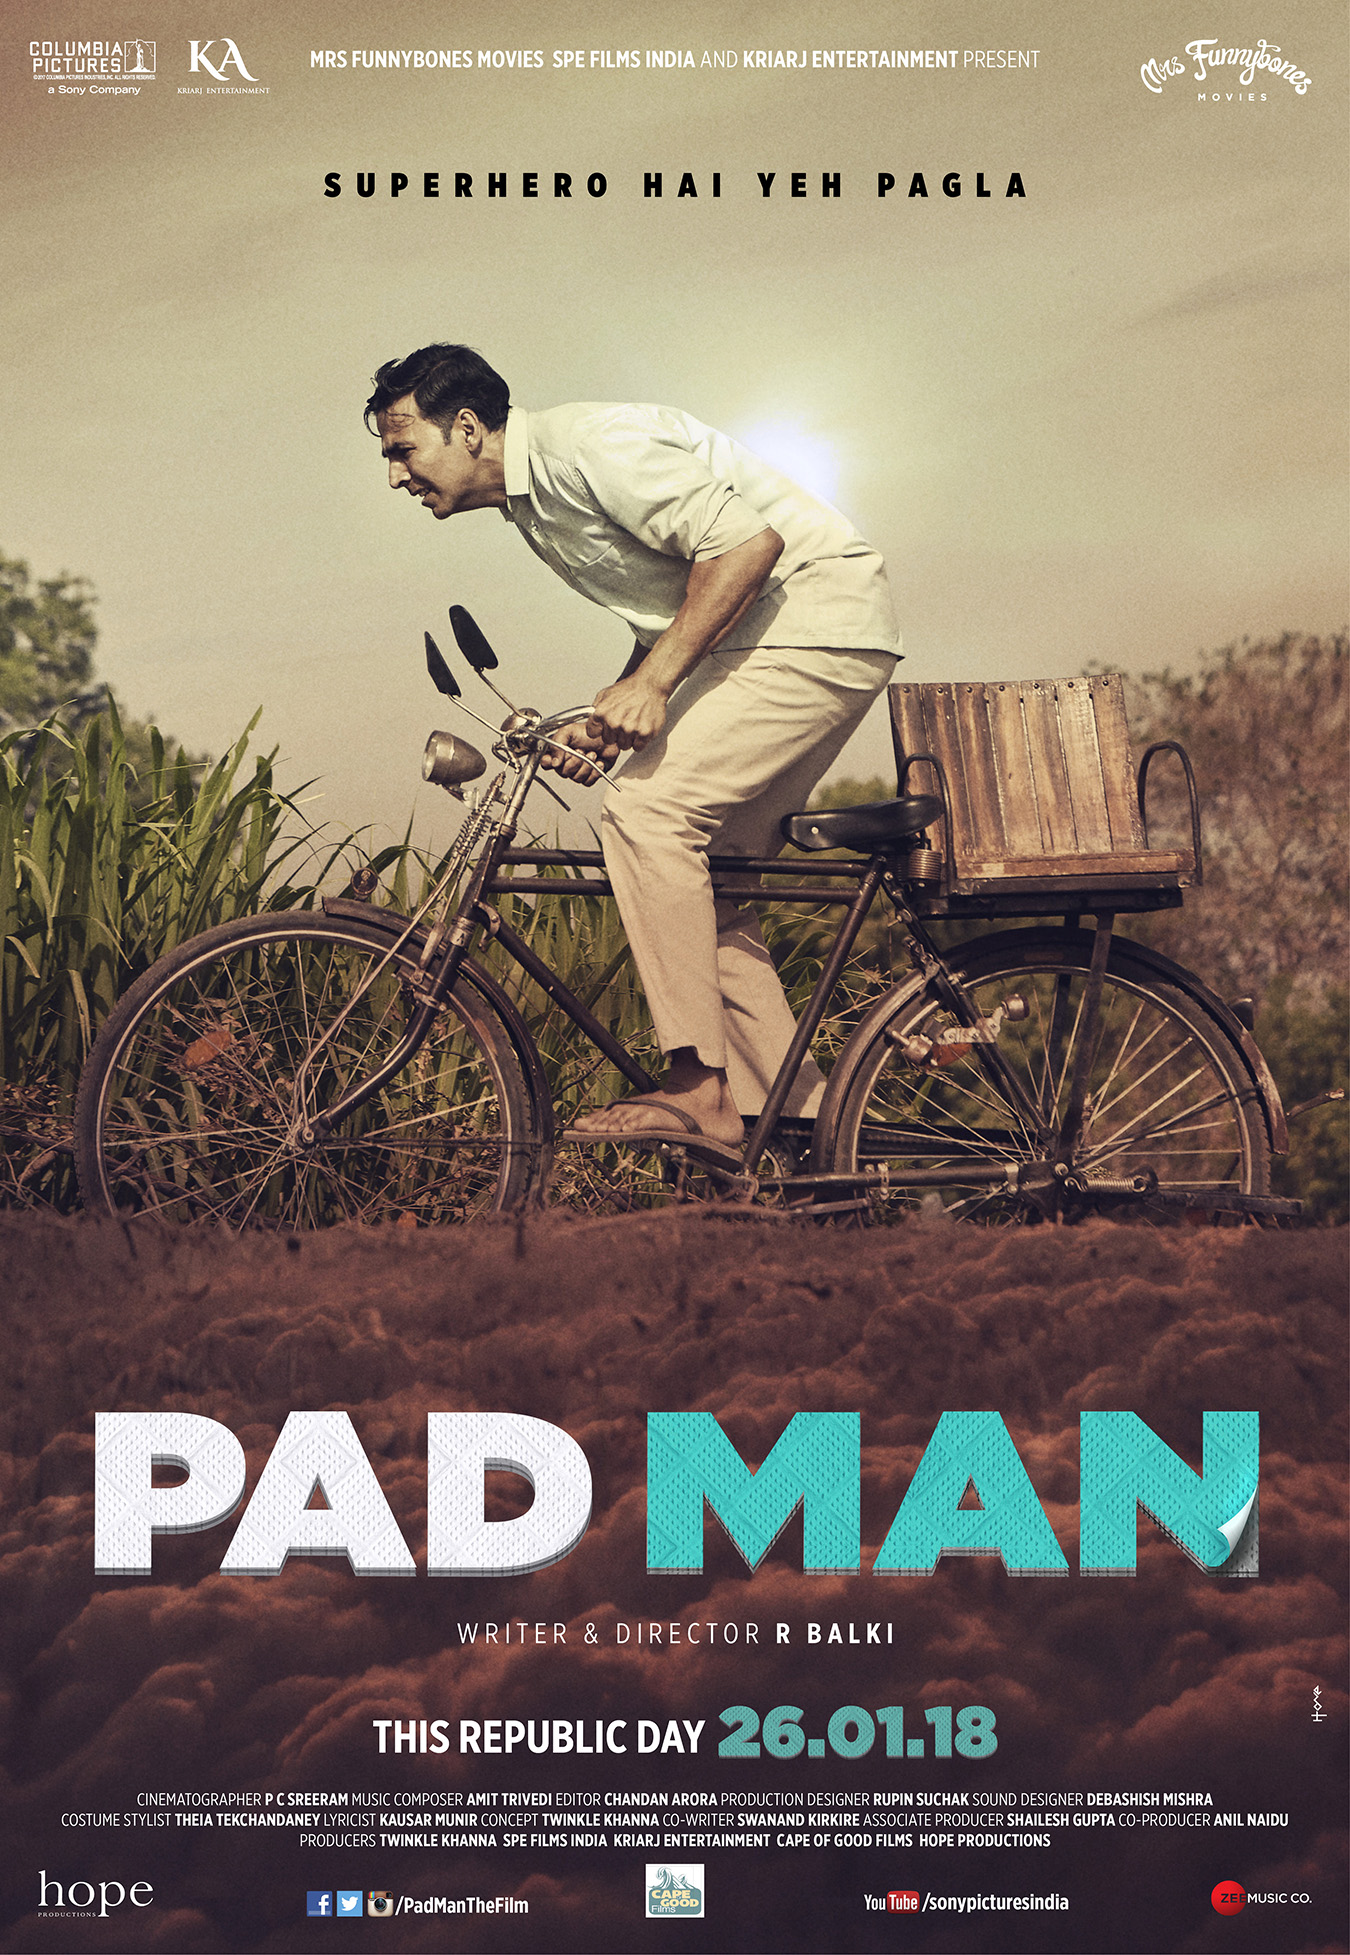 NOT YOUR AVERAGE SUPERHERO FILM! HERE'S PRESENTING THE MOST PROGRESSIVE FAMILY ENTERTAINER 'PAD MAN', IN CINEMAS 26TH JANUARY 2018